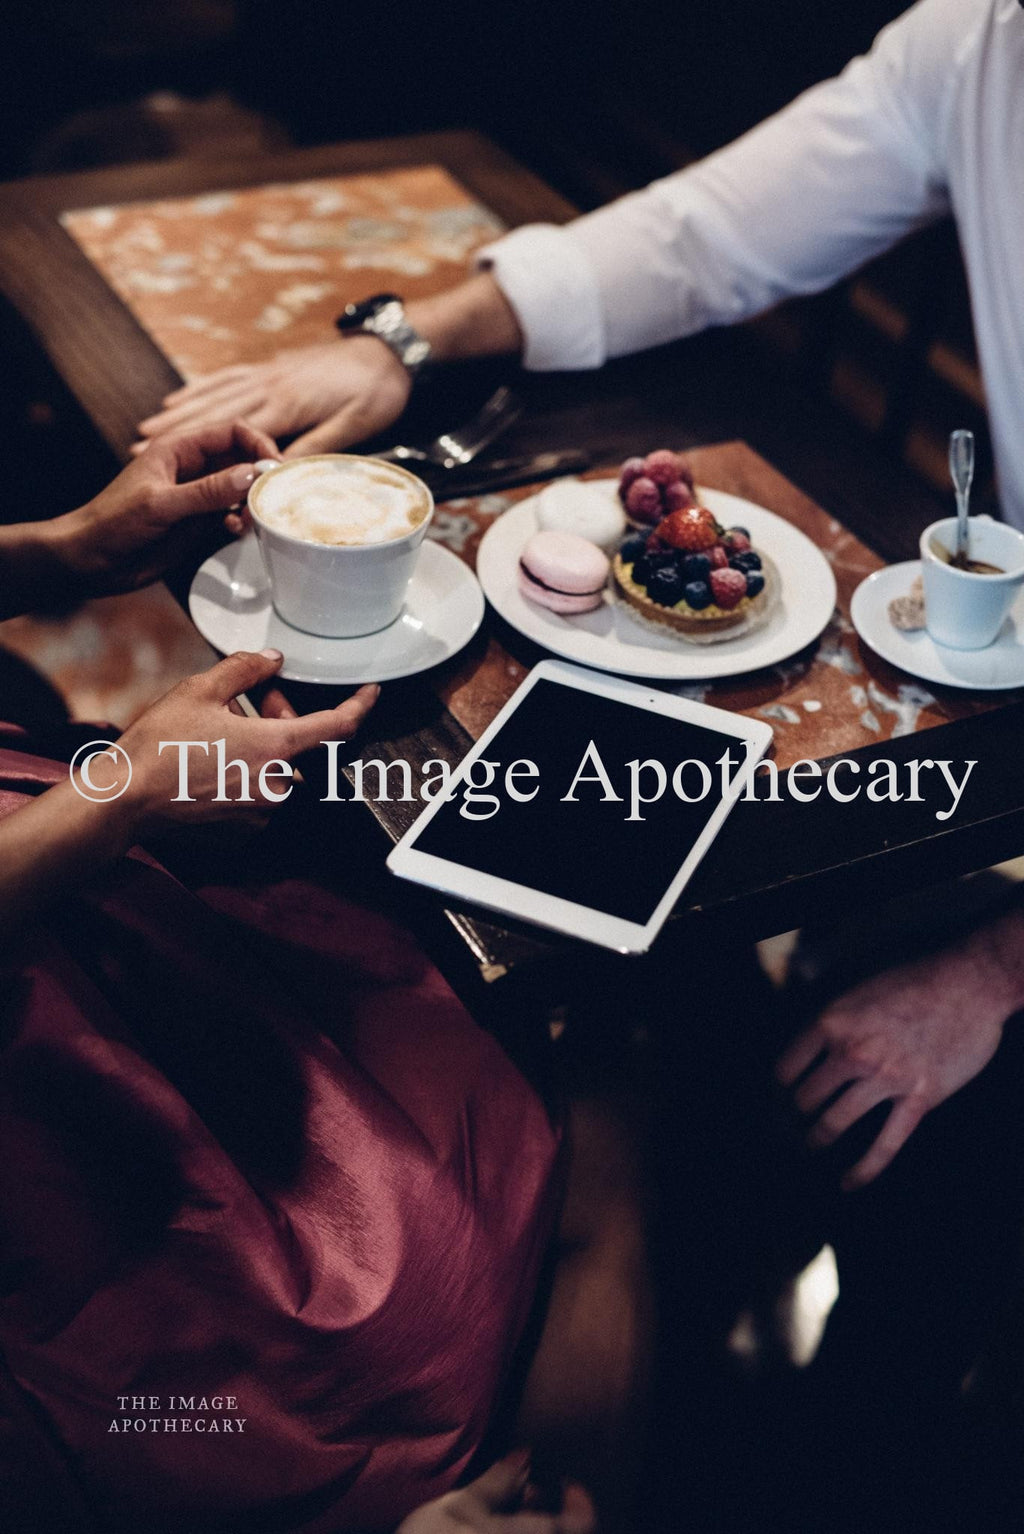 TheImageApothecary-309 - Stock Photography by The Image Apothecary